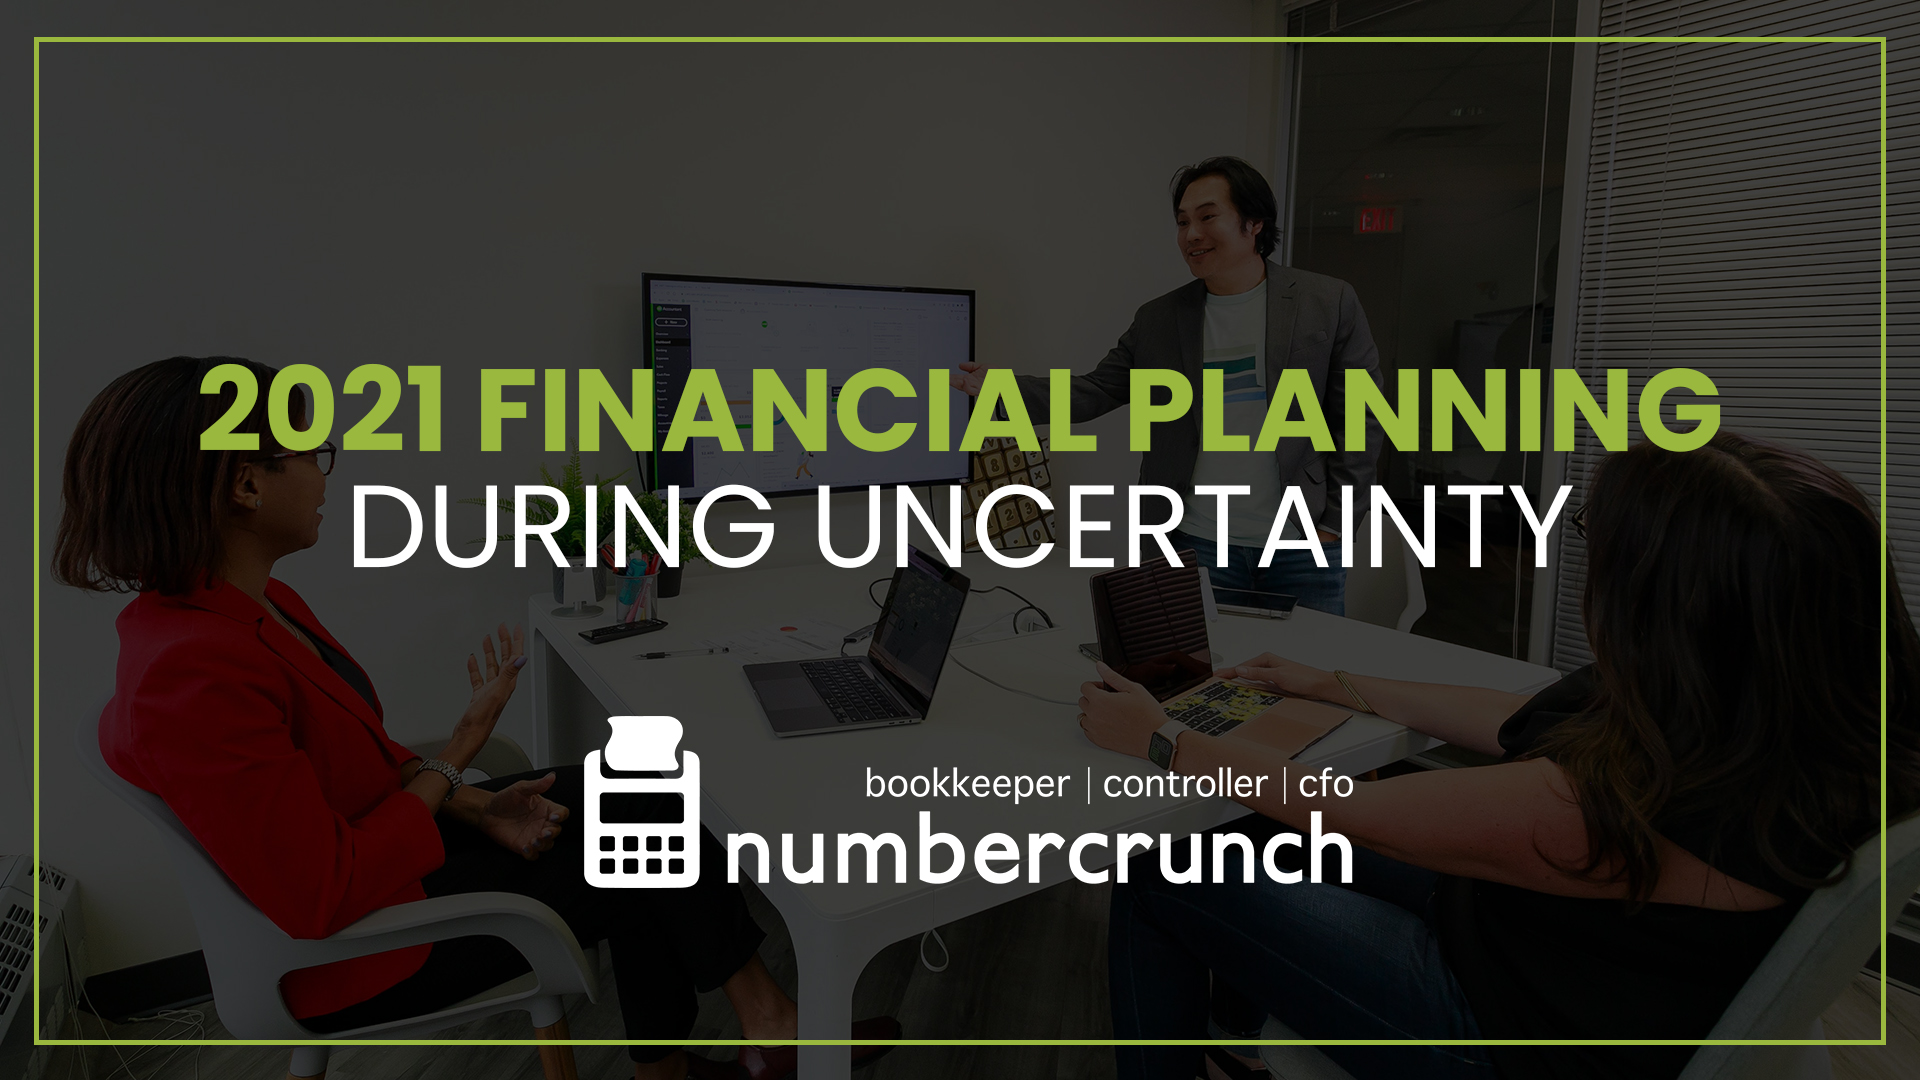 2021 Financial Planning During Uncertainty for Business Owners